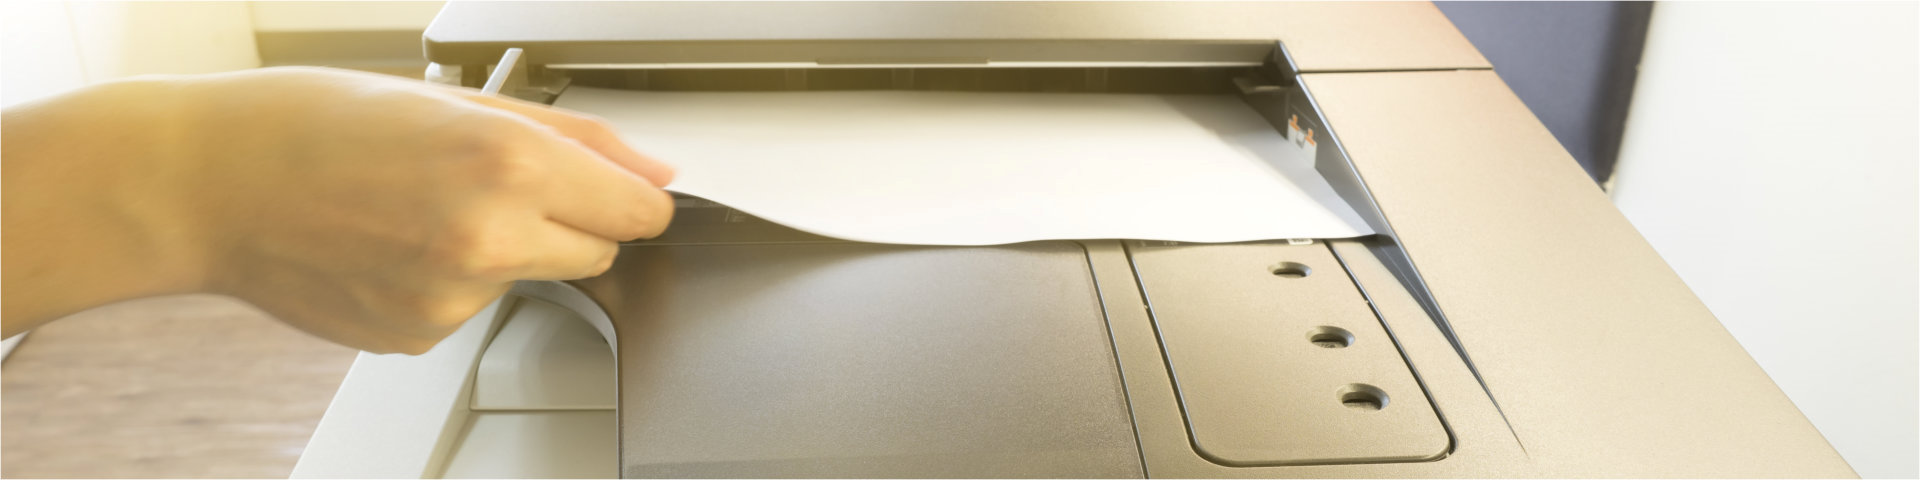 crop image of a person putting a paper inside photocopier machine